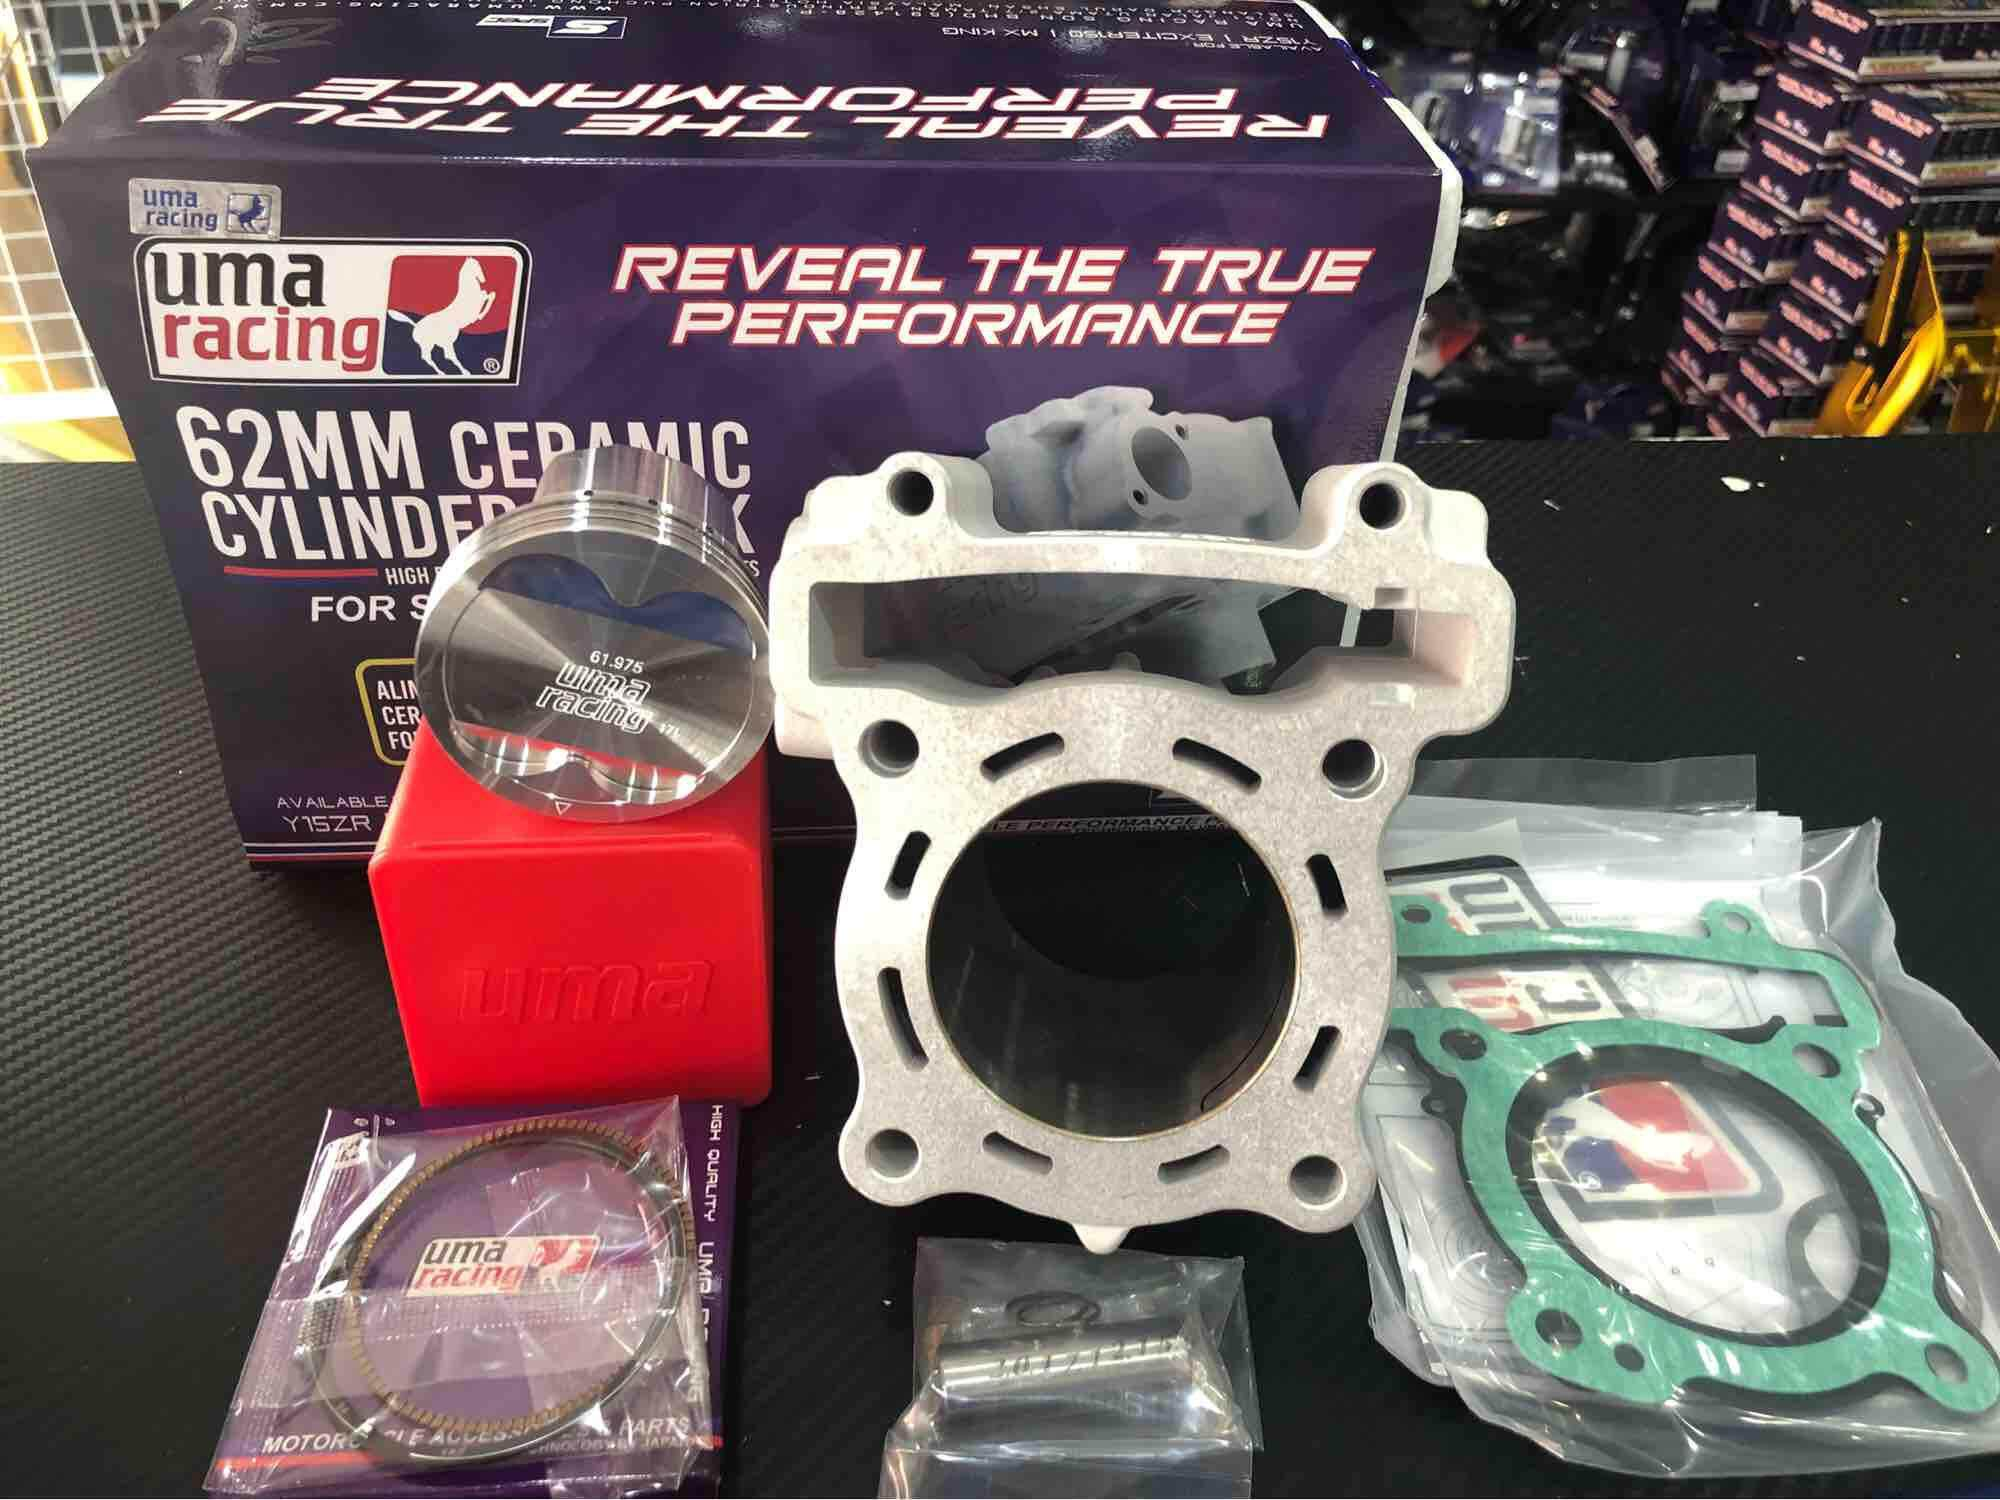 Y15ZR Uma Racing Ceramic Block(62mm)